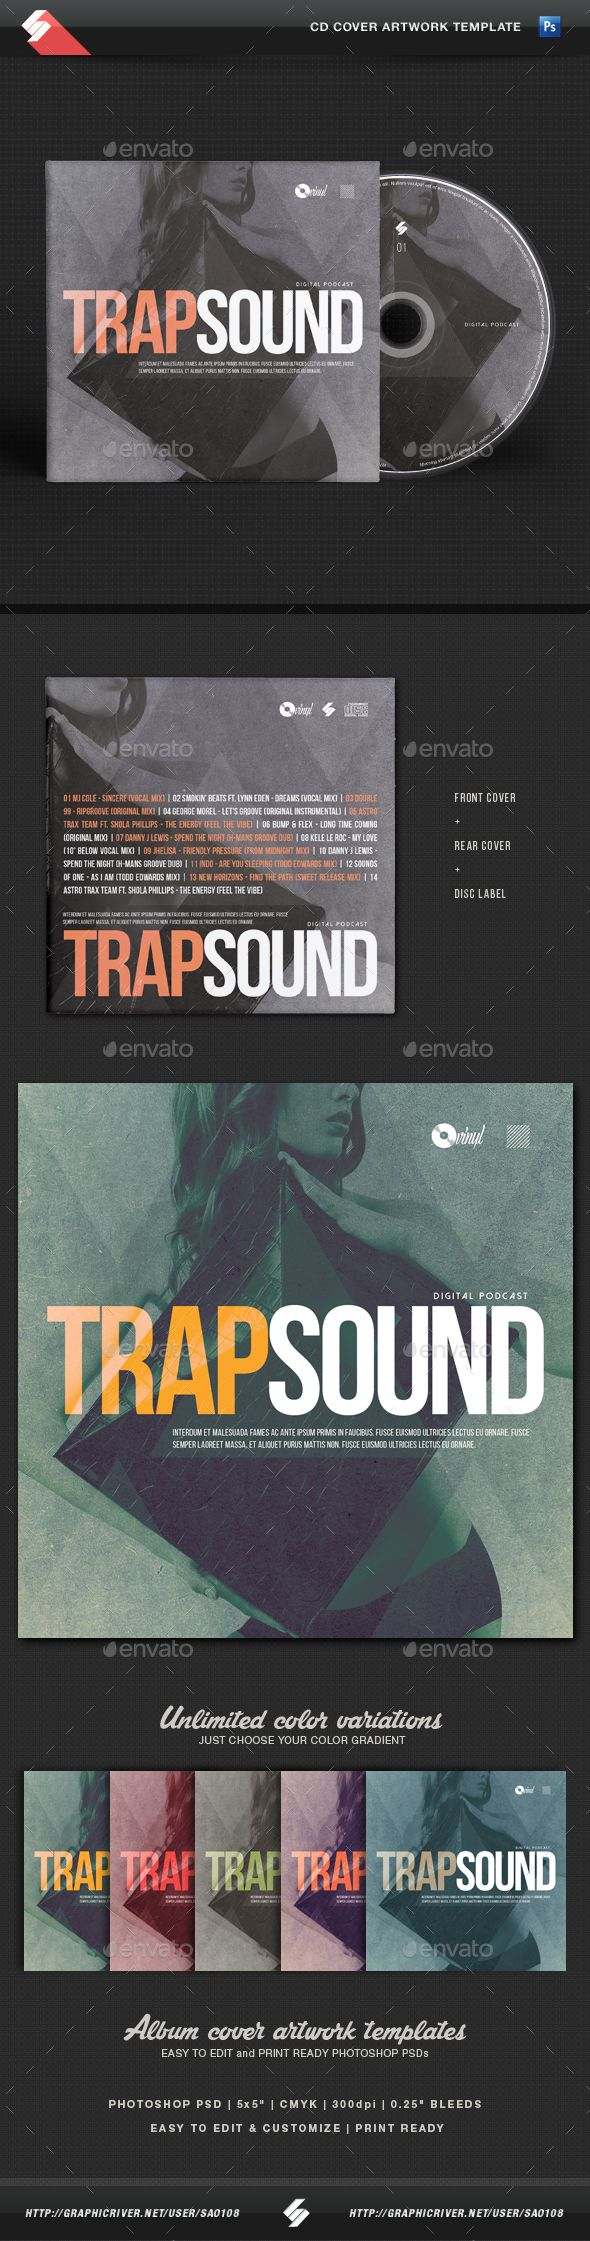 Cd box template download free vector art stock graphics amp images - Trap Sound Cd Cover Template